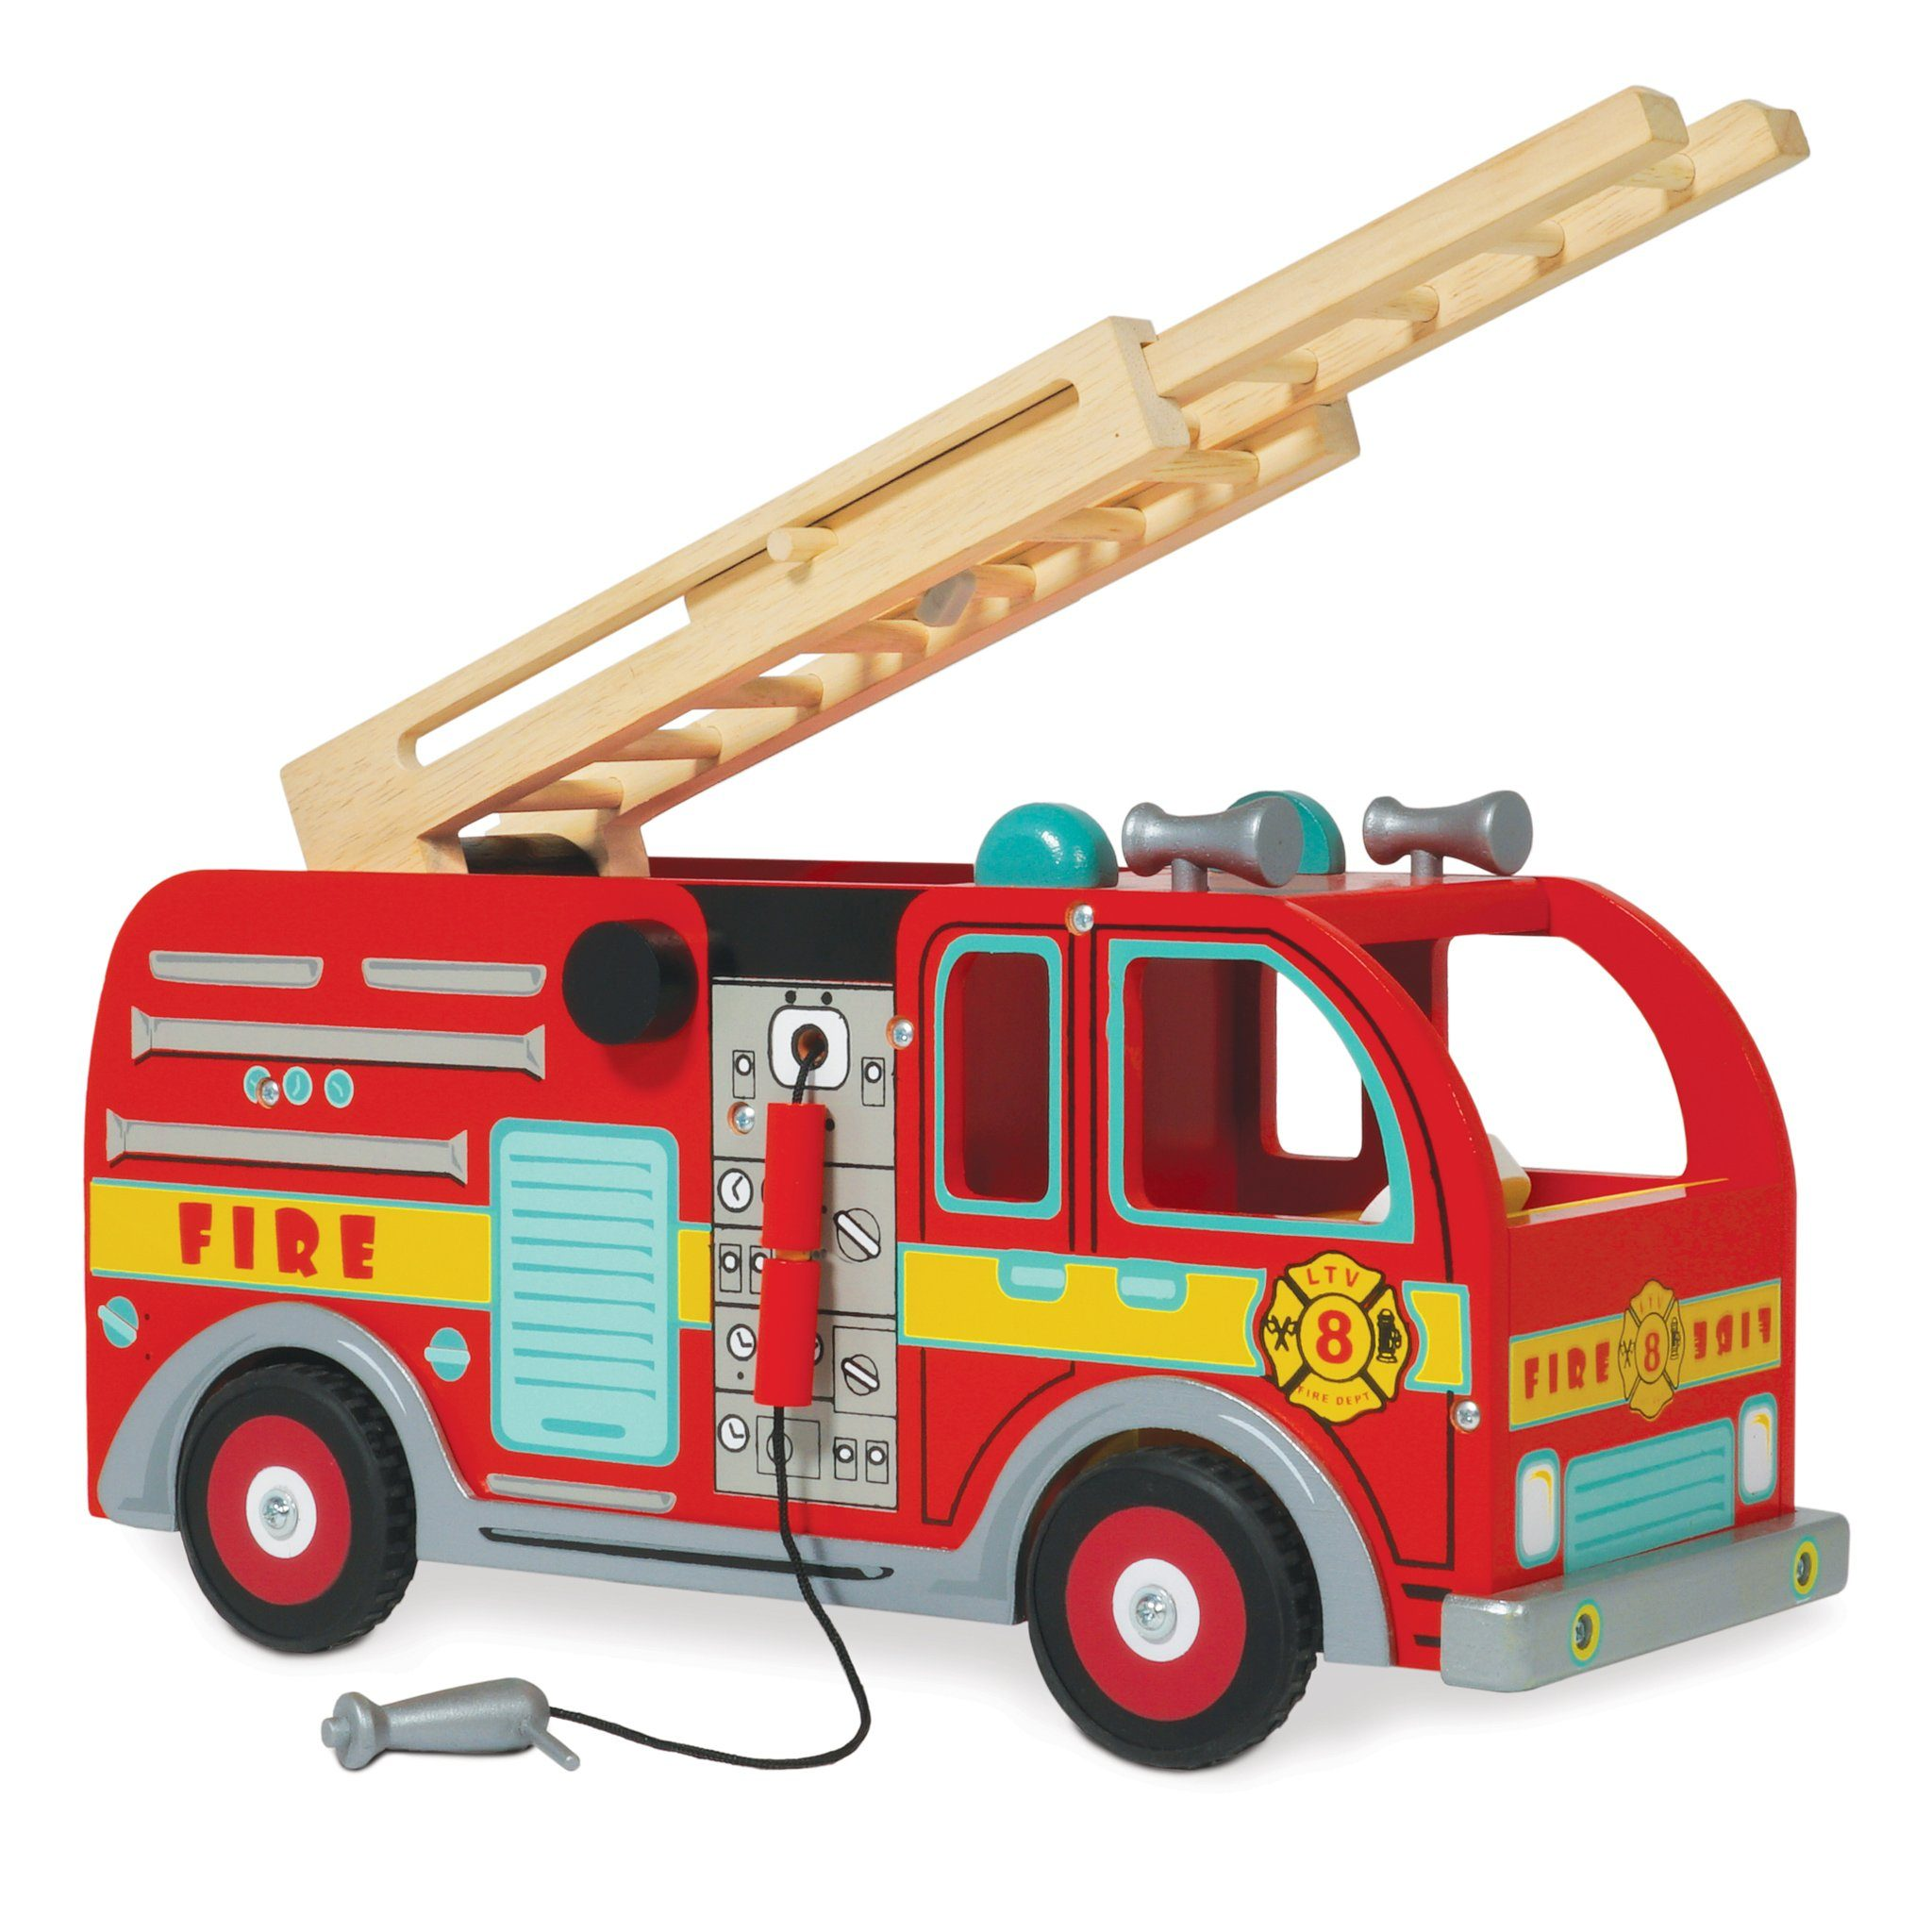 Le Toy Van Wooden Fire Truck - TOYBOX Cyprus